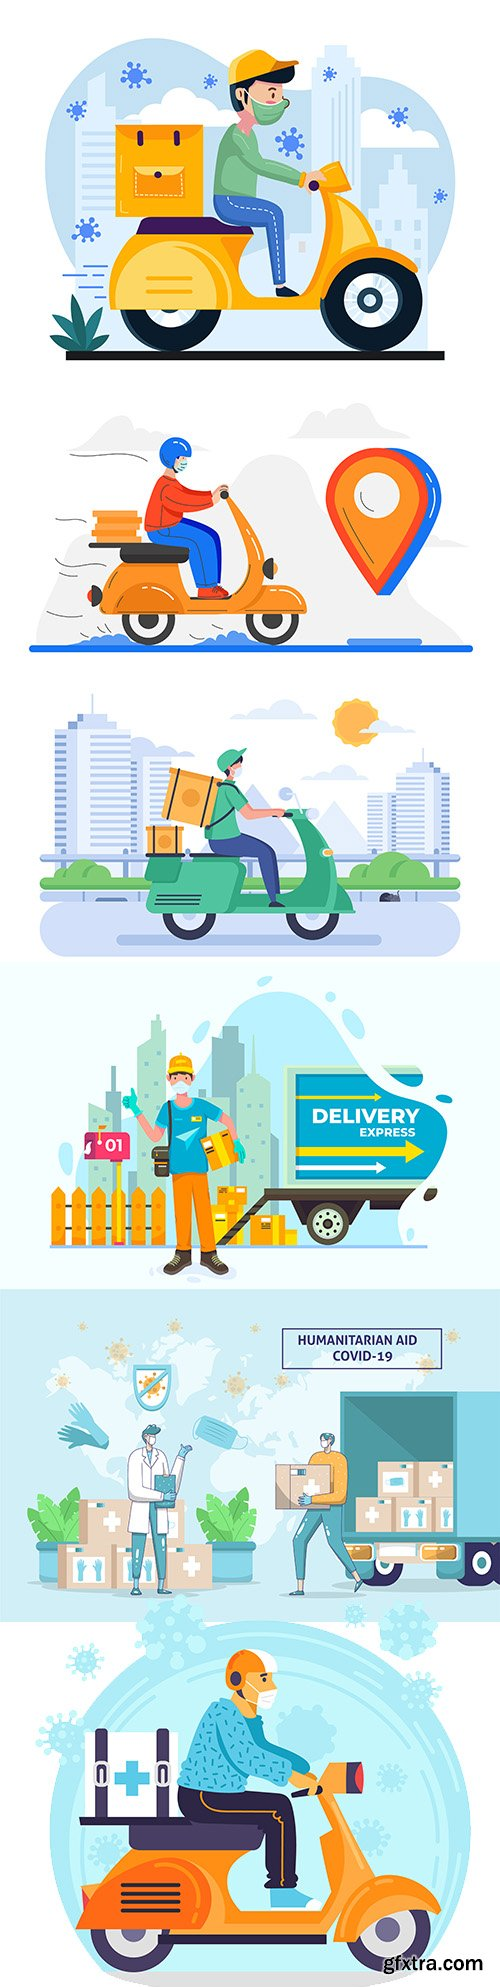 Safe delivery of products and orders during a pandemic